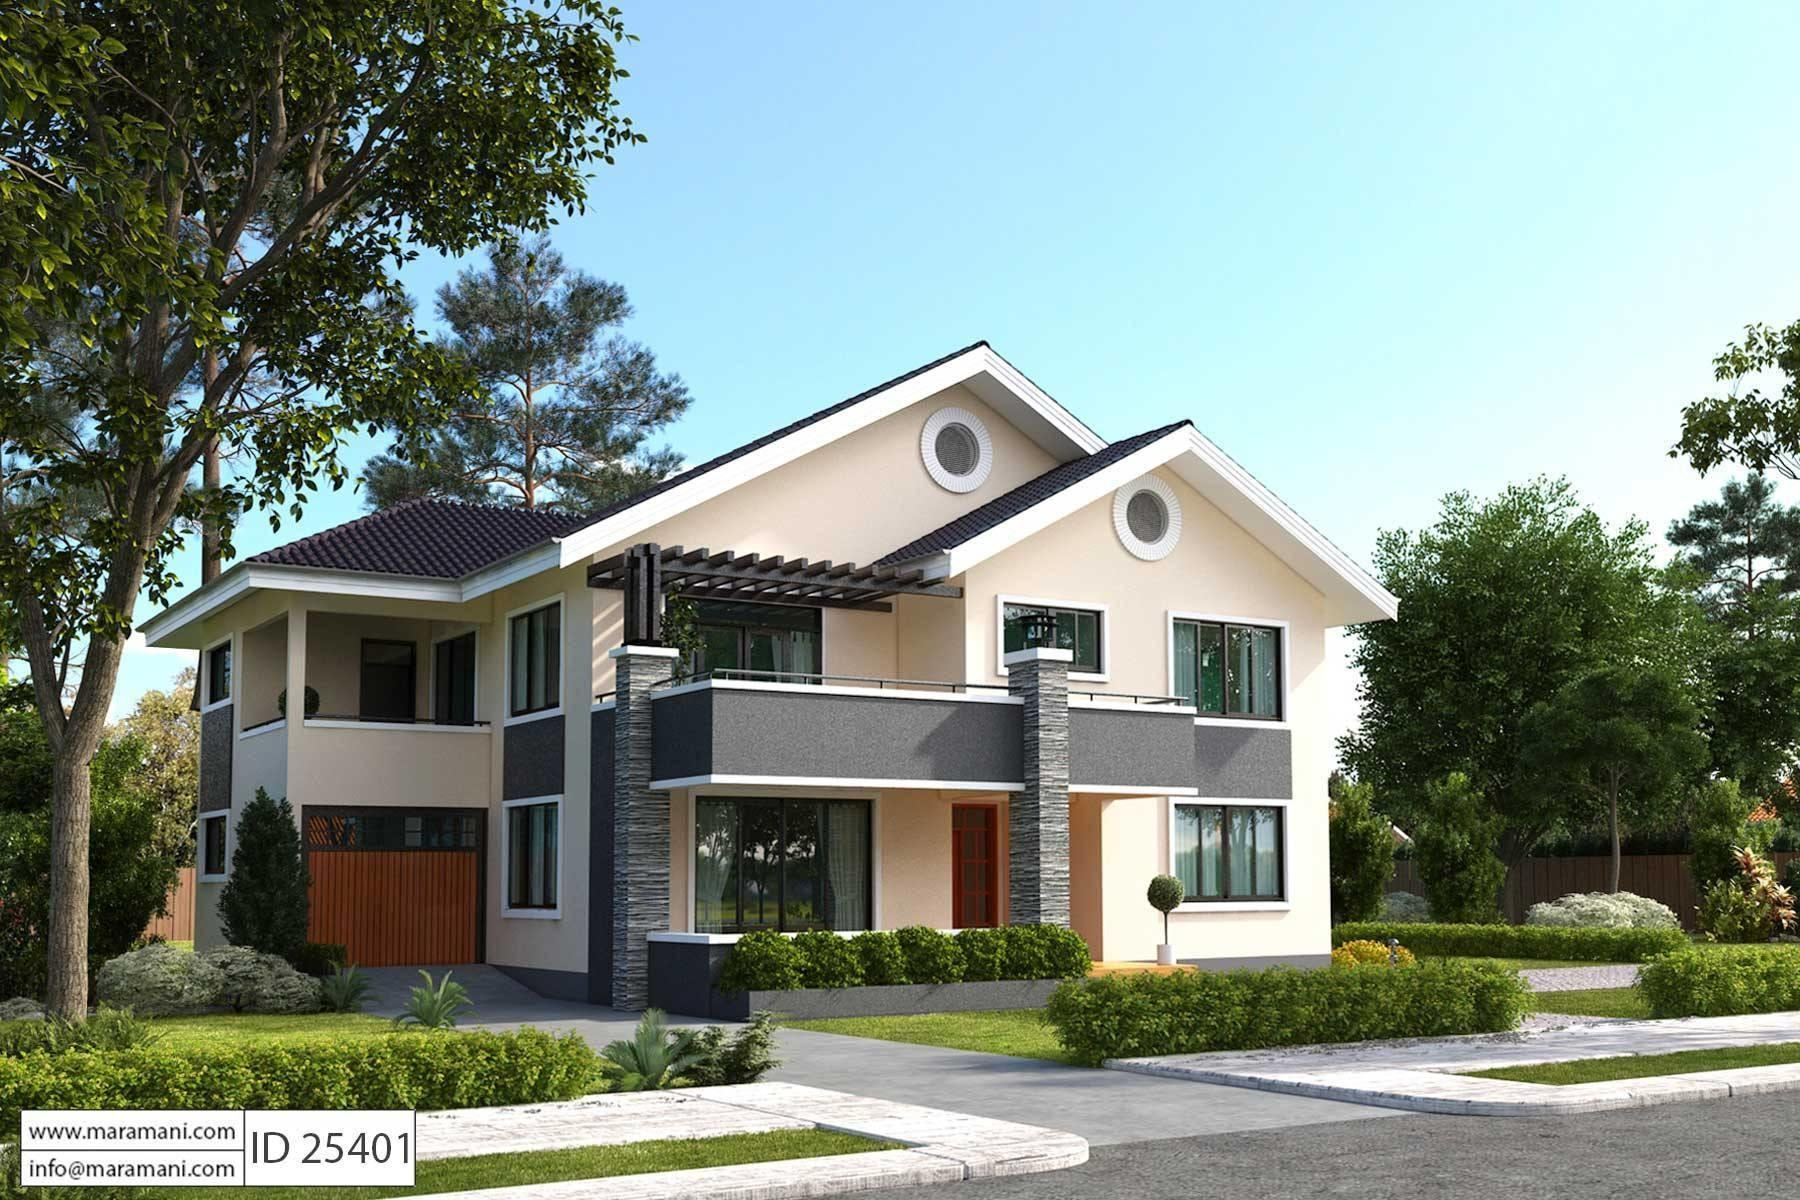 Bedroom House Plan Floor Plans Maramani